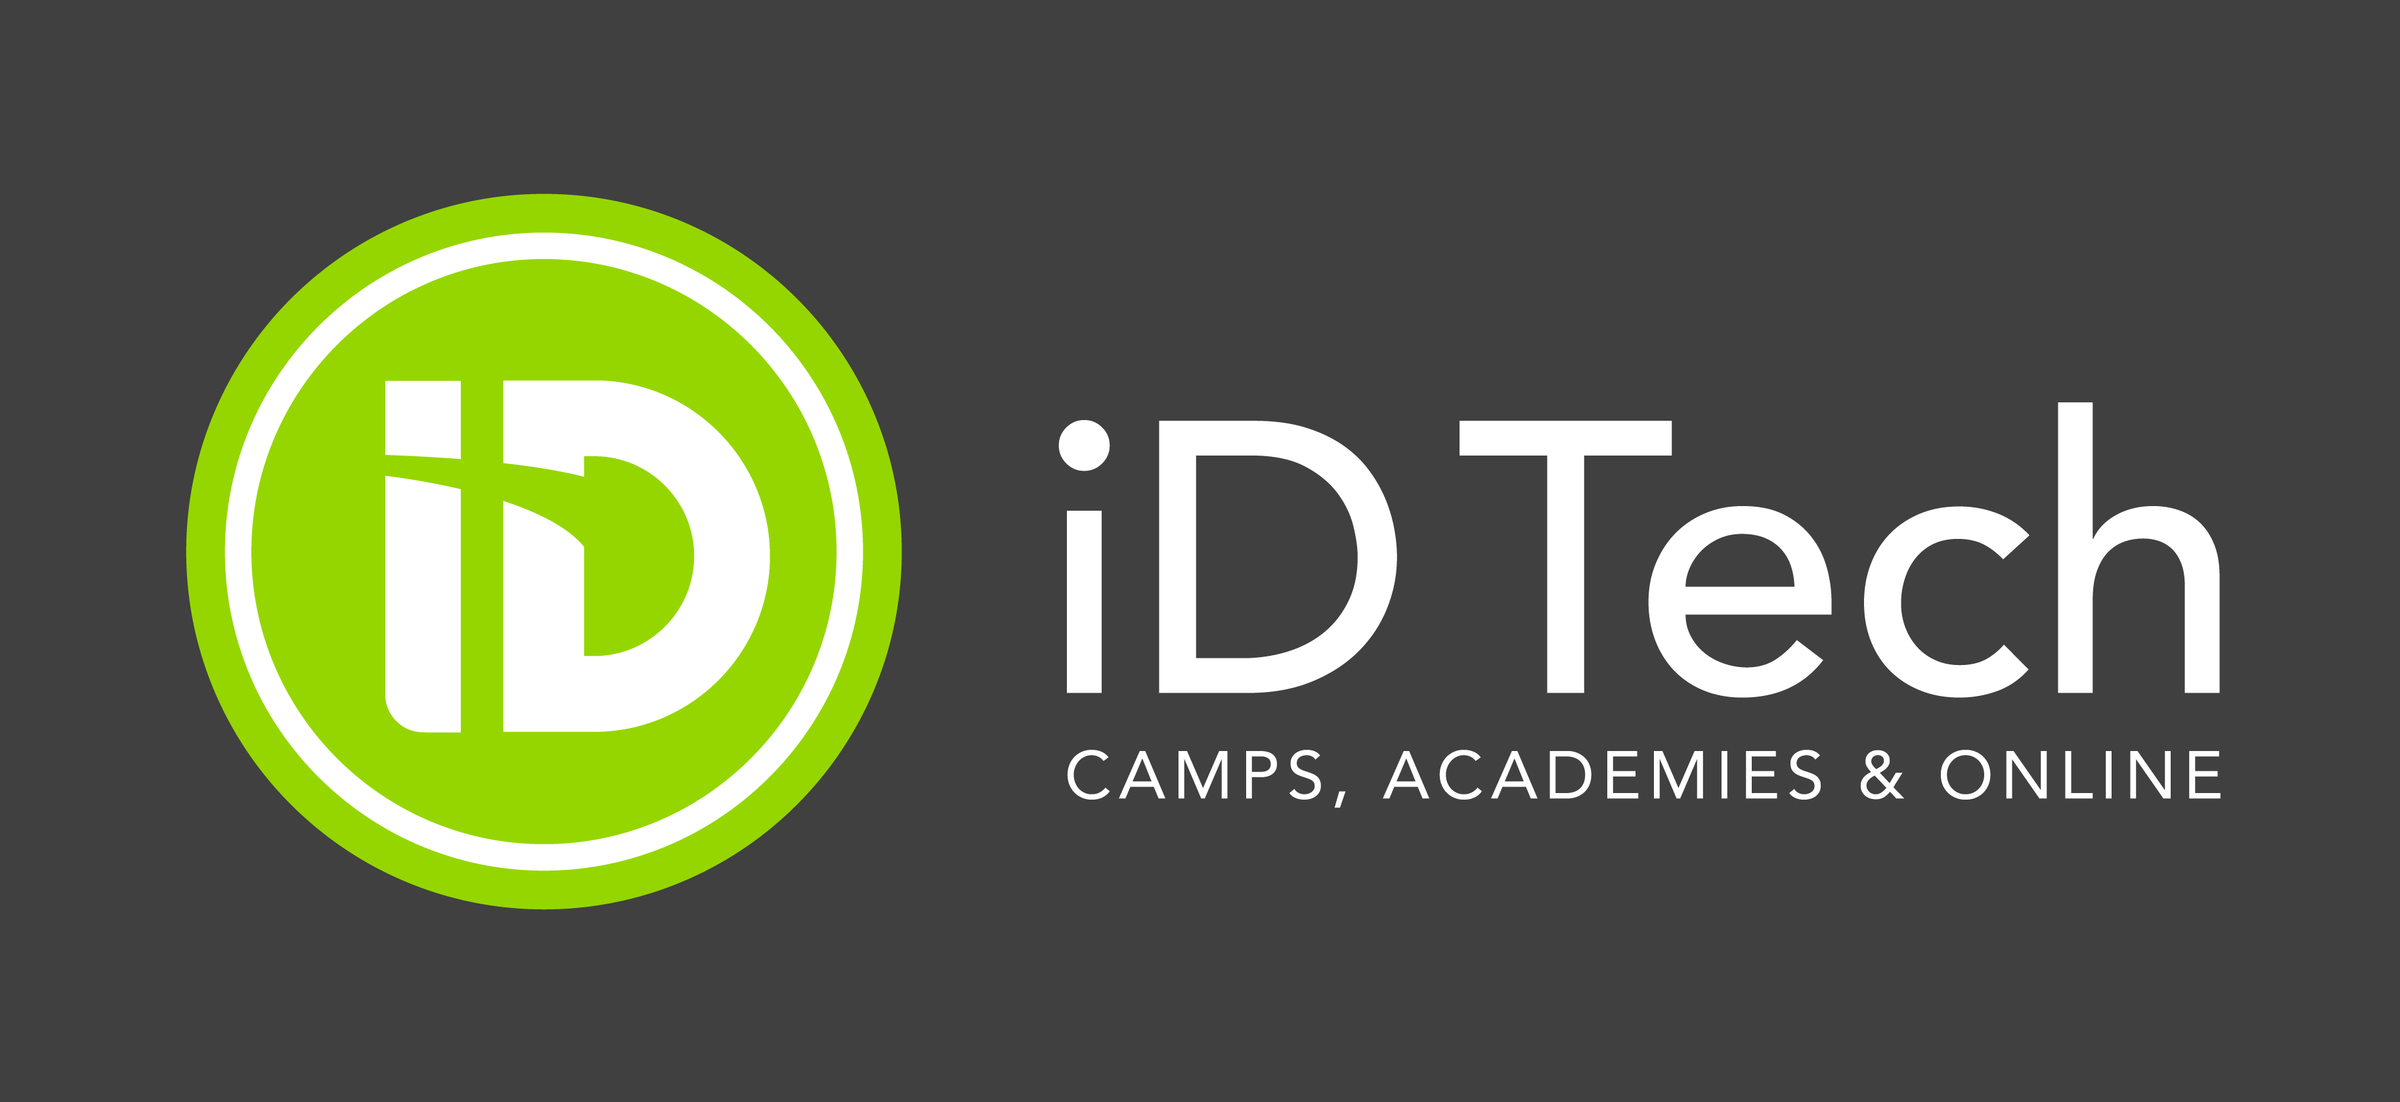 iD Tech Camps: #1 in STEM Education - Held at University of Denver